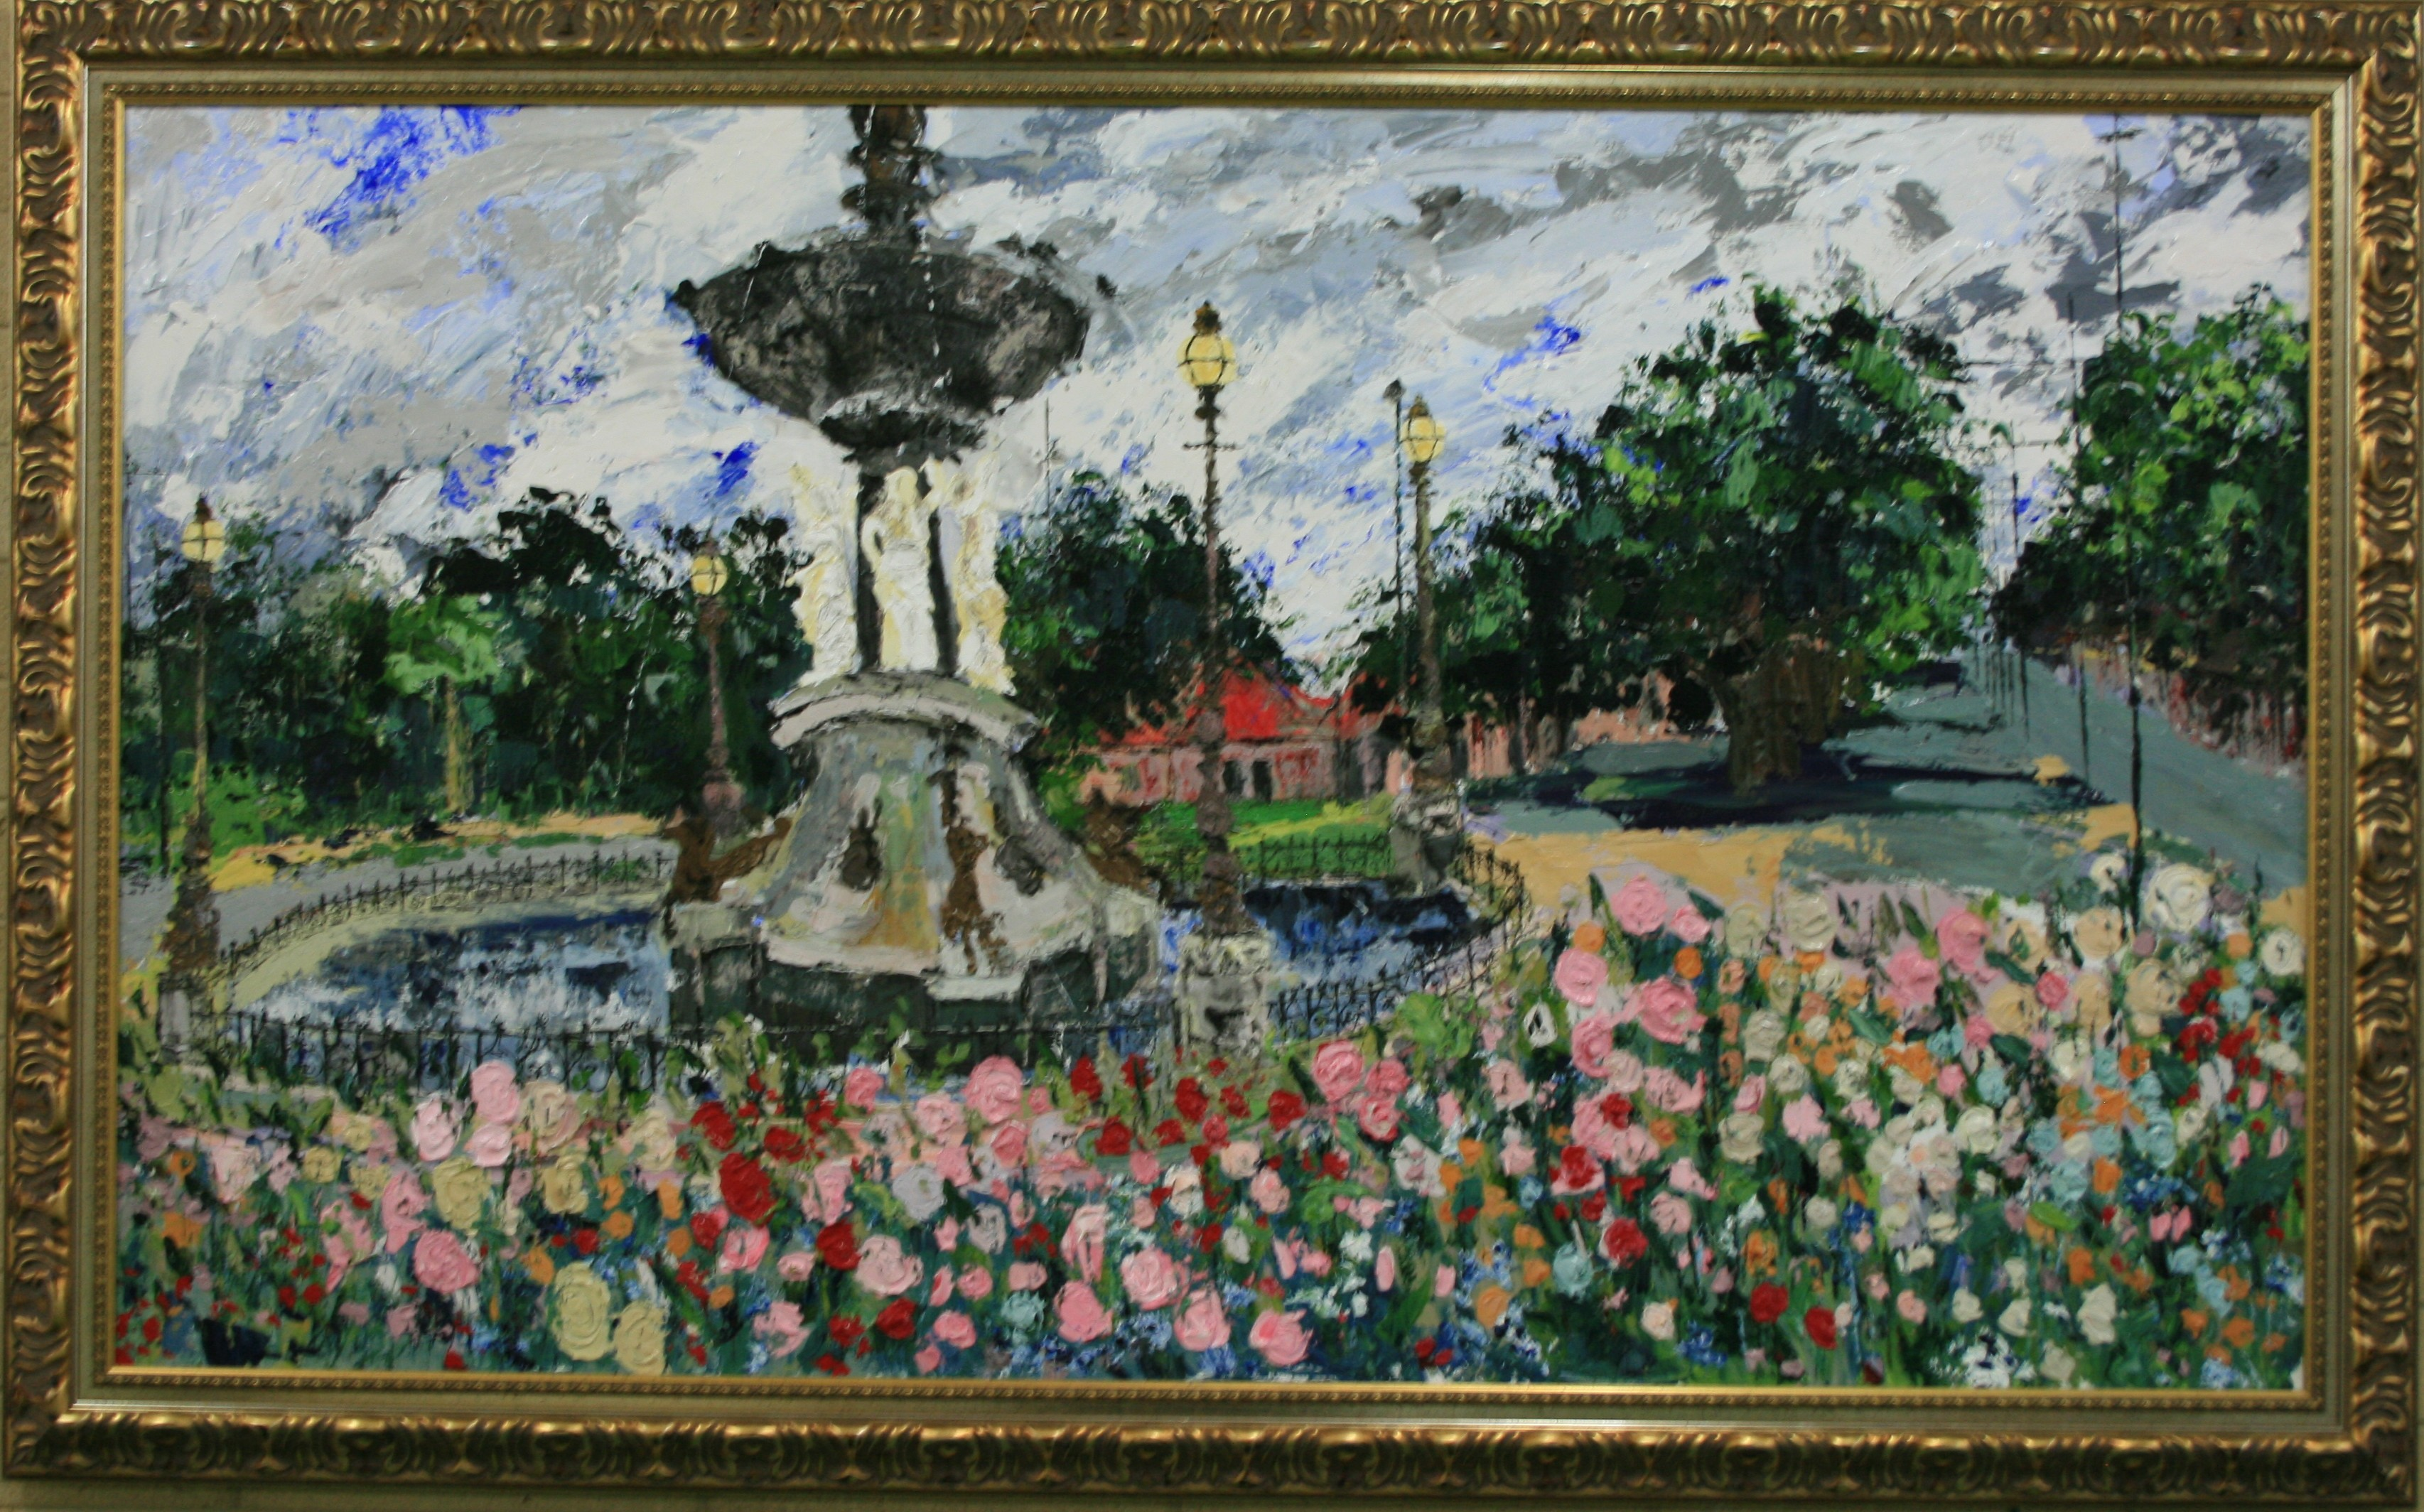 PLs013 'Alexandra Fountain 2' 125x230 $9500